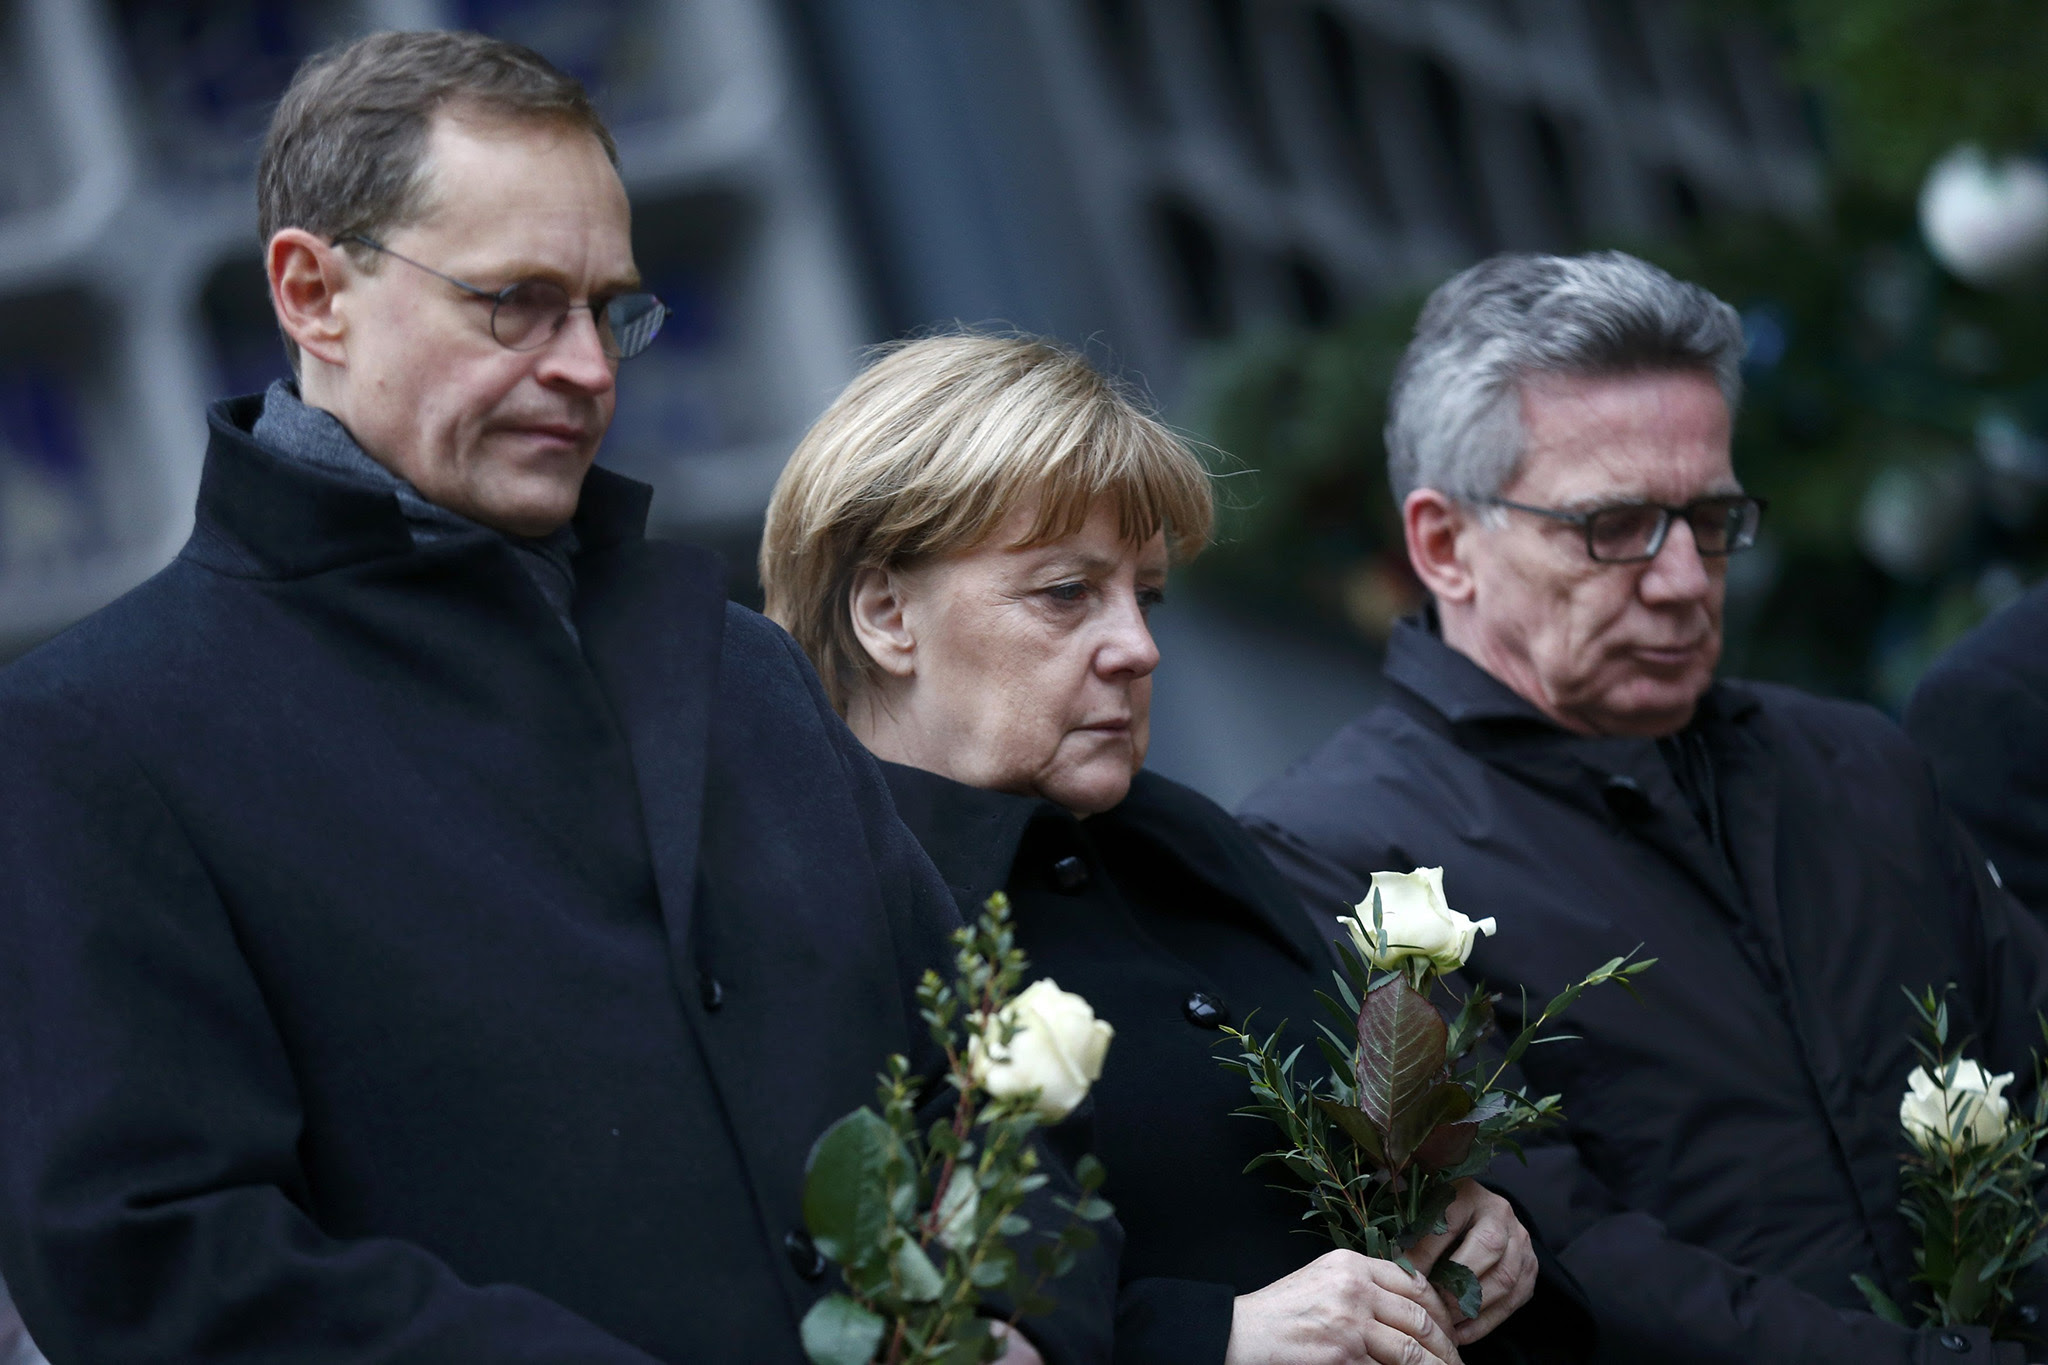 Berlin mayor Michael Mueller, German Chancellor Angela Merkel and German interior minister Thomas de Maiziere stand in silence at the Christmas market in Berlin, Germany, December 20, 2016, one day after a truck ploughed into a crowded Christmas market in the German capital.